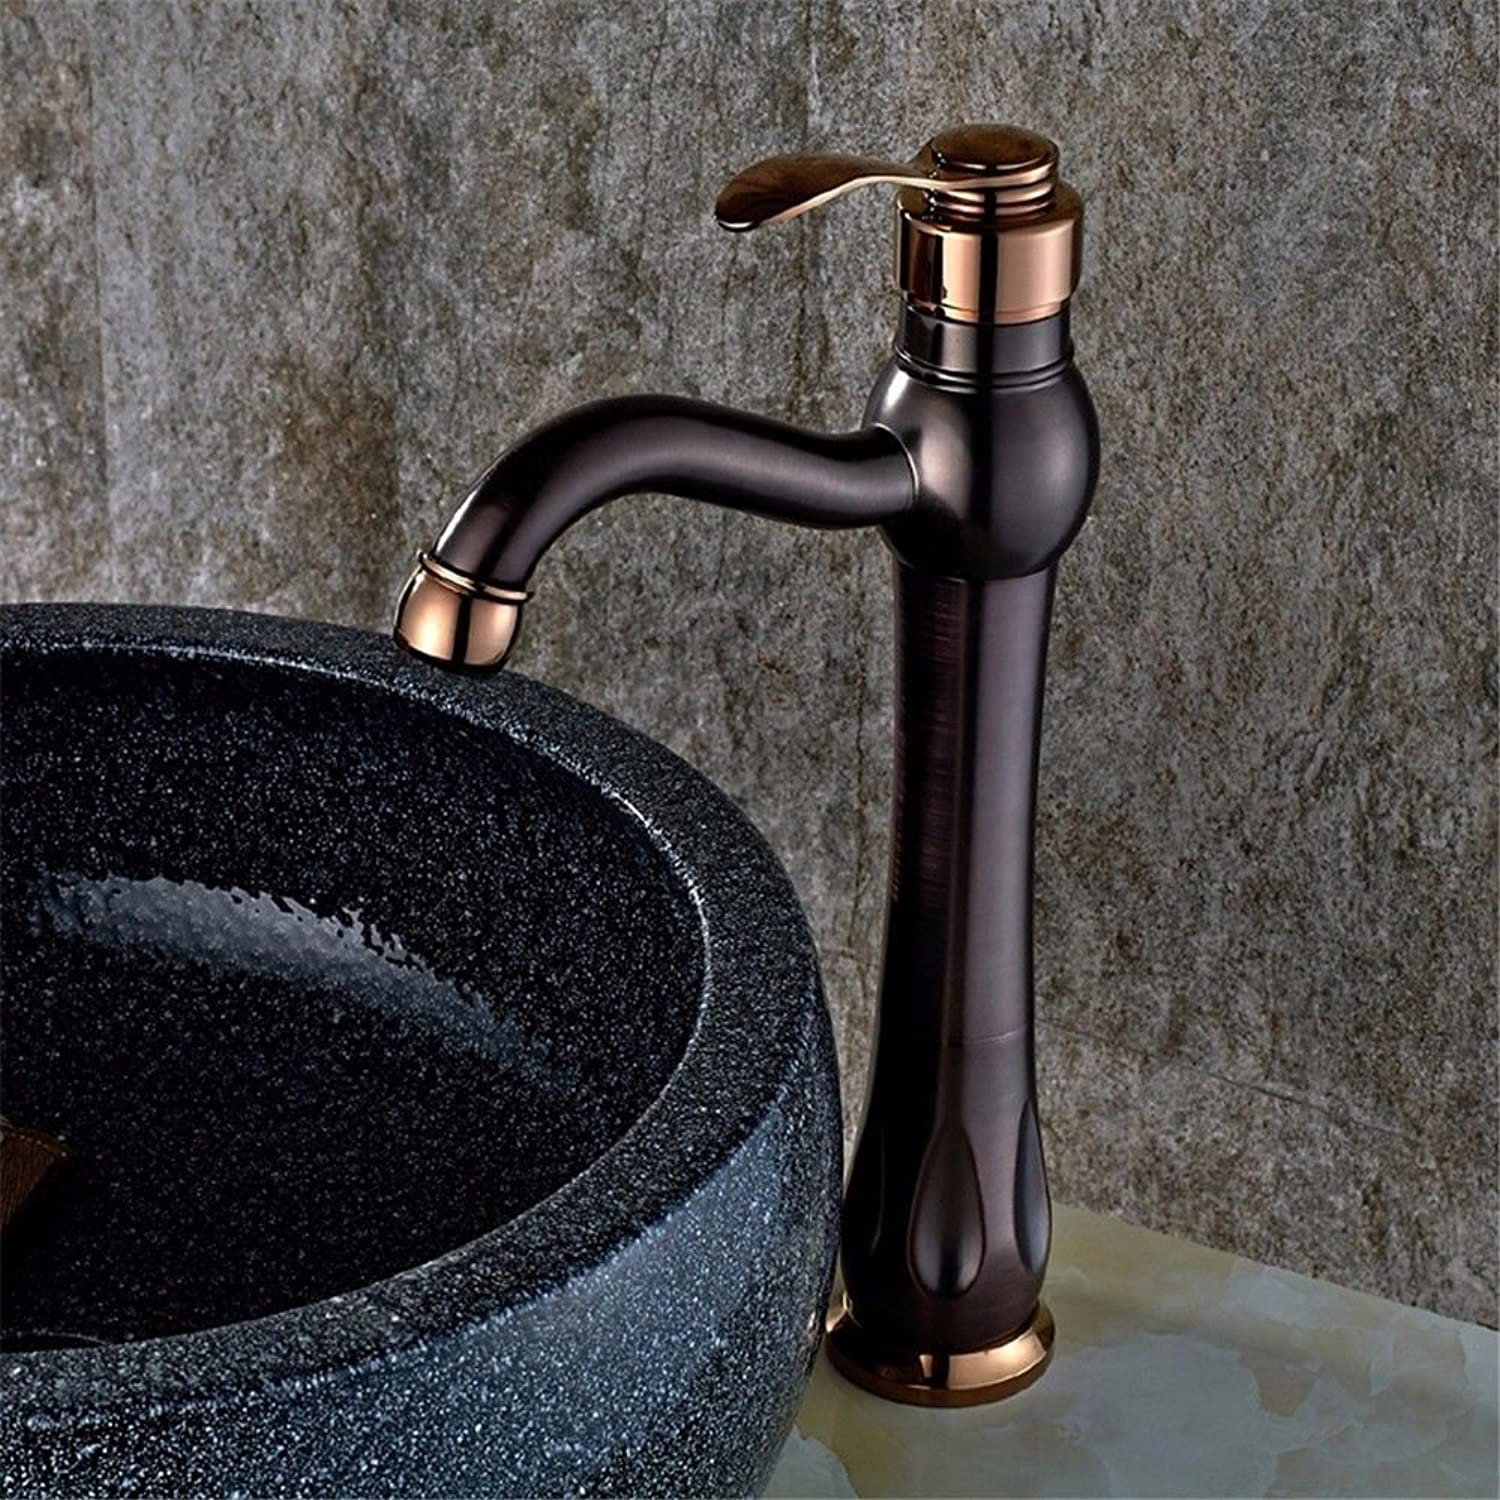 MMFHP Basin Faucet Copper Plating Paint Bathroom Hot and Cold Faucet